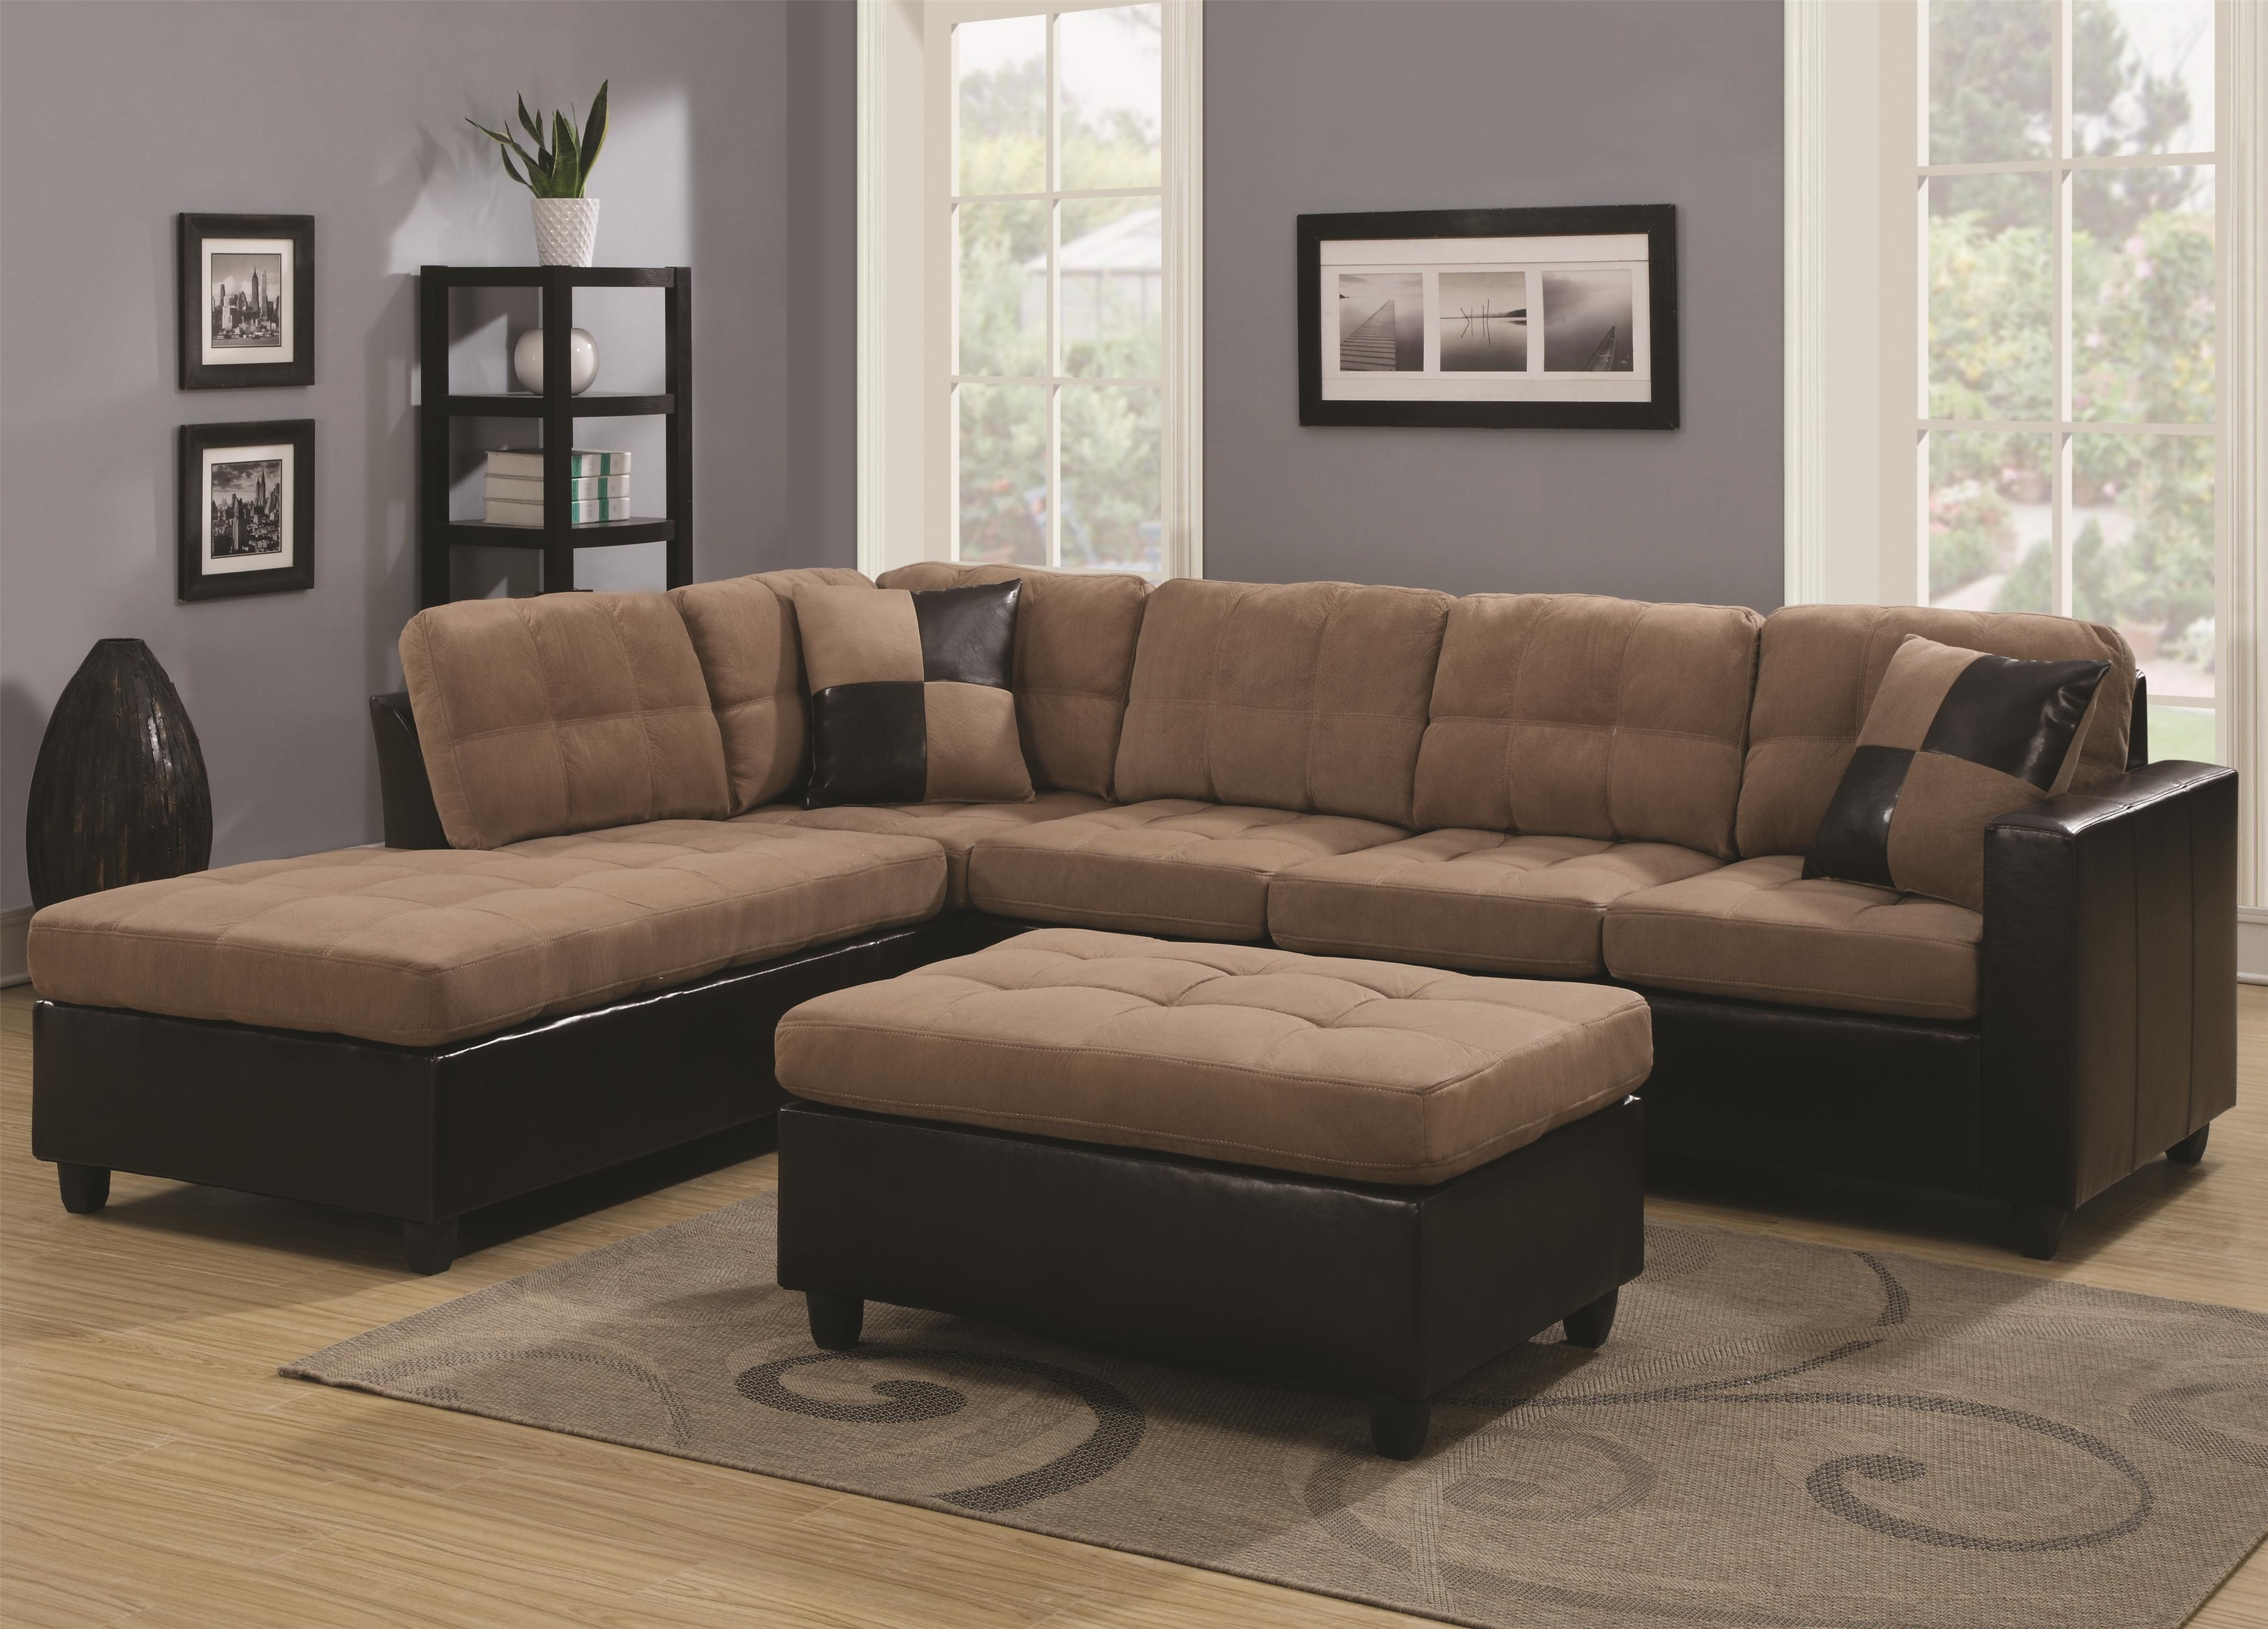 Mallory Sectional by Coaster at Northeast Factory Direct